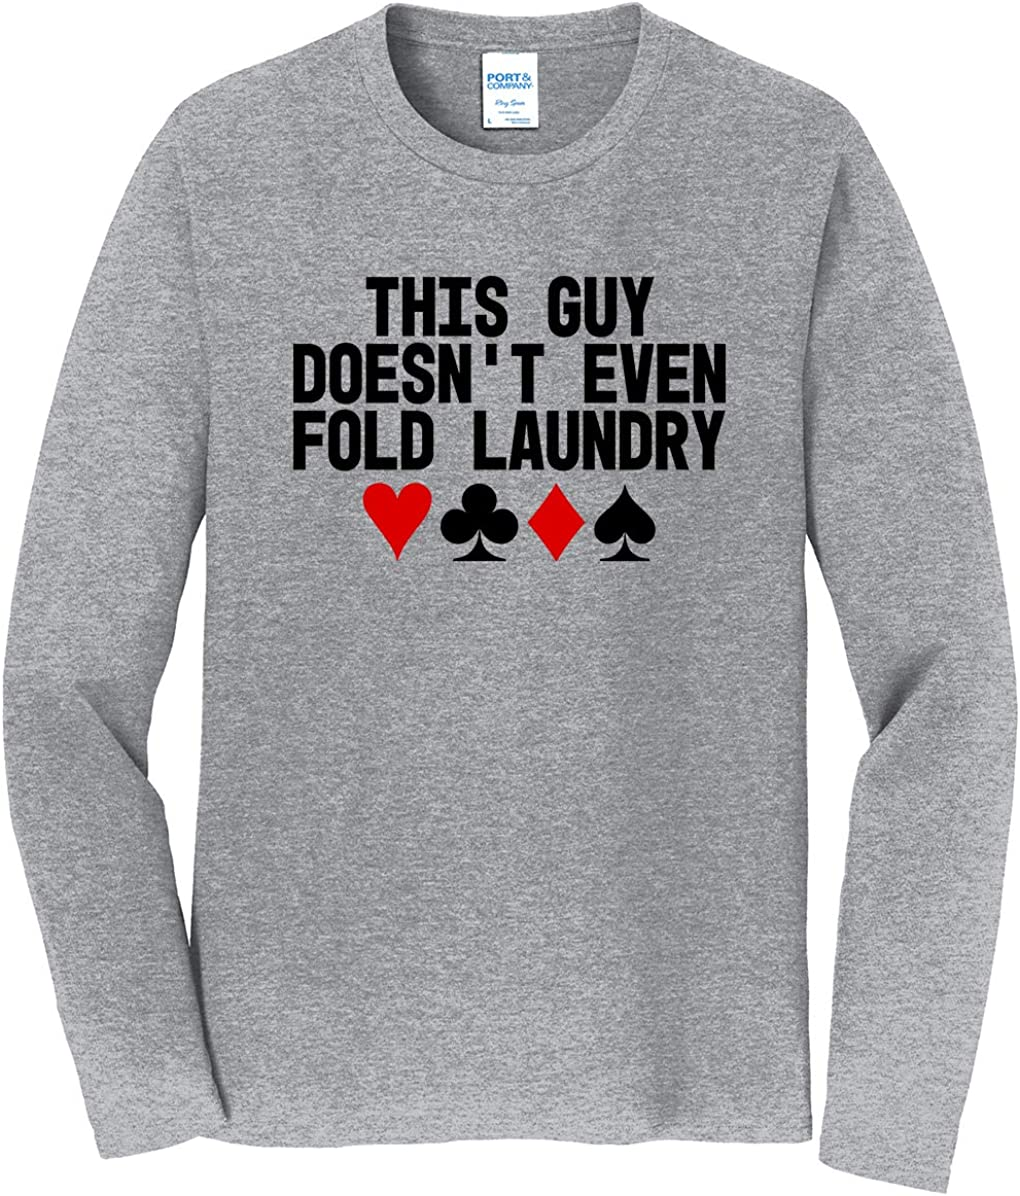 Top 8 This Guy Doesn't Even Fold Laundry Tshirt